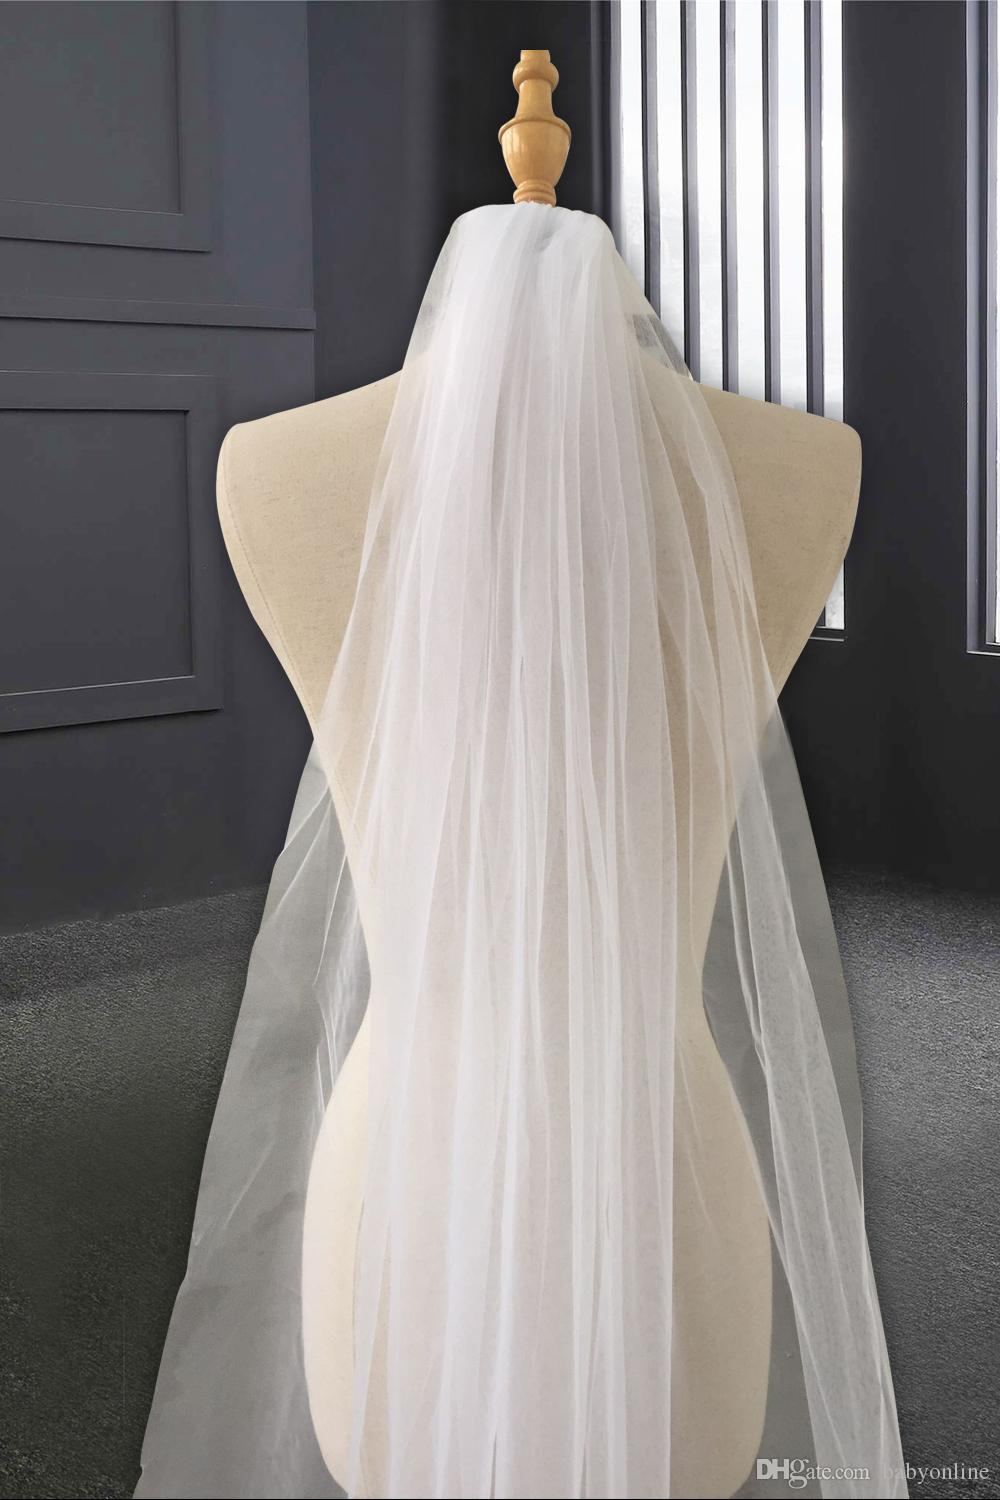 Best Sell Bridal Wedding Veil with Appliques Edge 2019 Tulle Long Cathedral Wedding Veil Bridal Veil with Comb veu de noiva cpa219